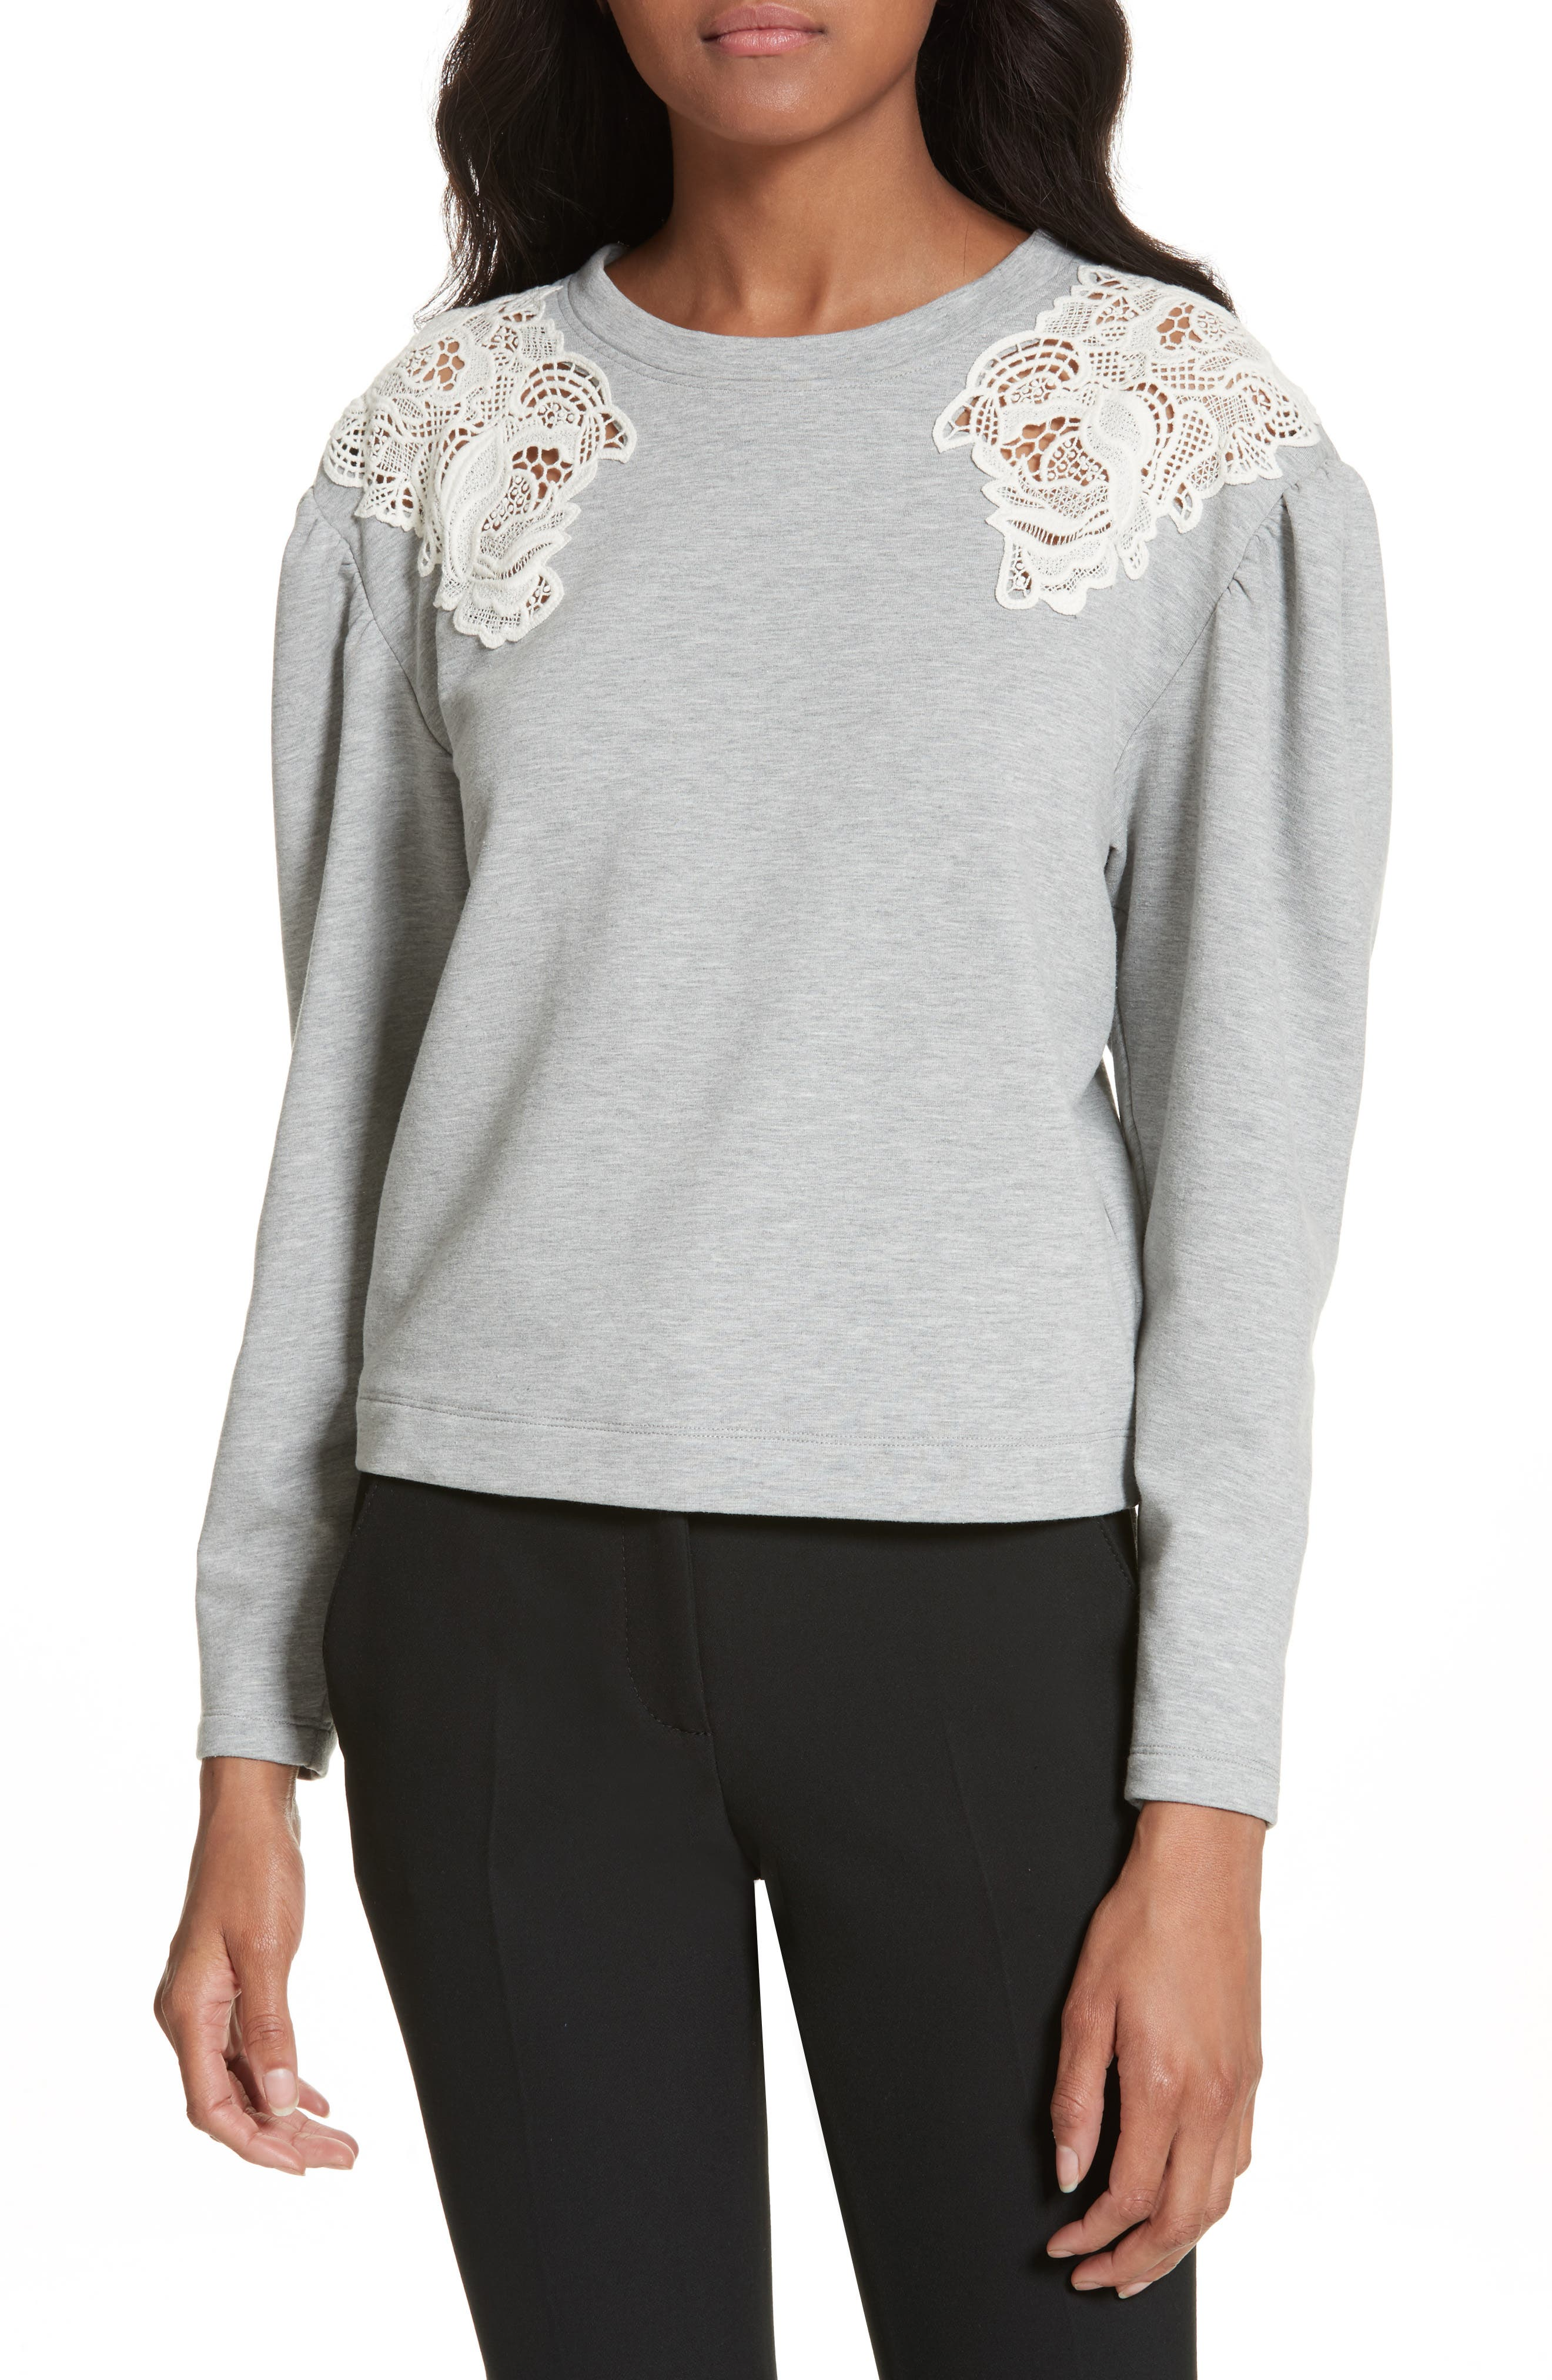 Lace Inset Sweatshirt,                         Main,                         color, Grey/ Off White